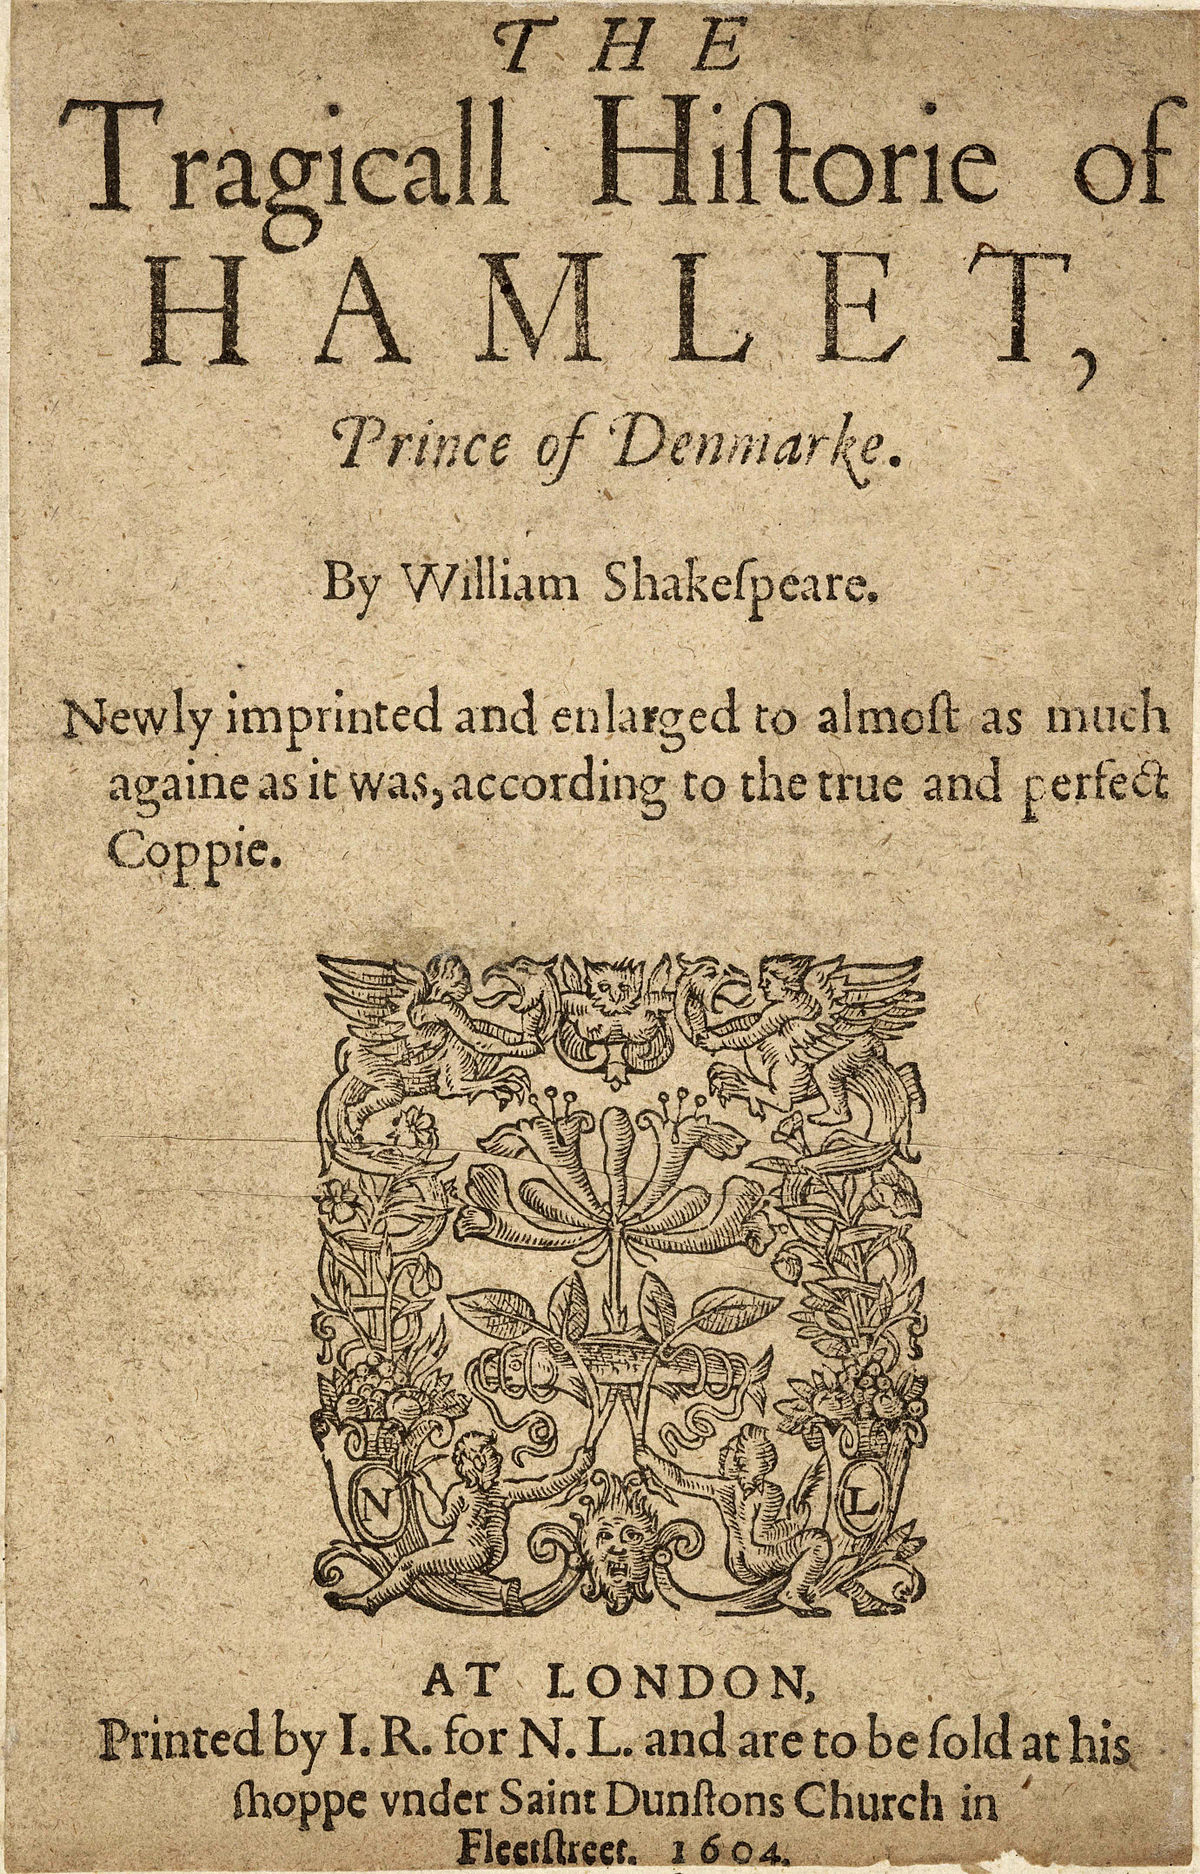 hamlets madness in hamlet by william shakespeare This thesis makes a tentative application of the relevance theory proposed by sperber and wilson in the interpretation of hamlet's insanity in shakespeare's.